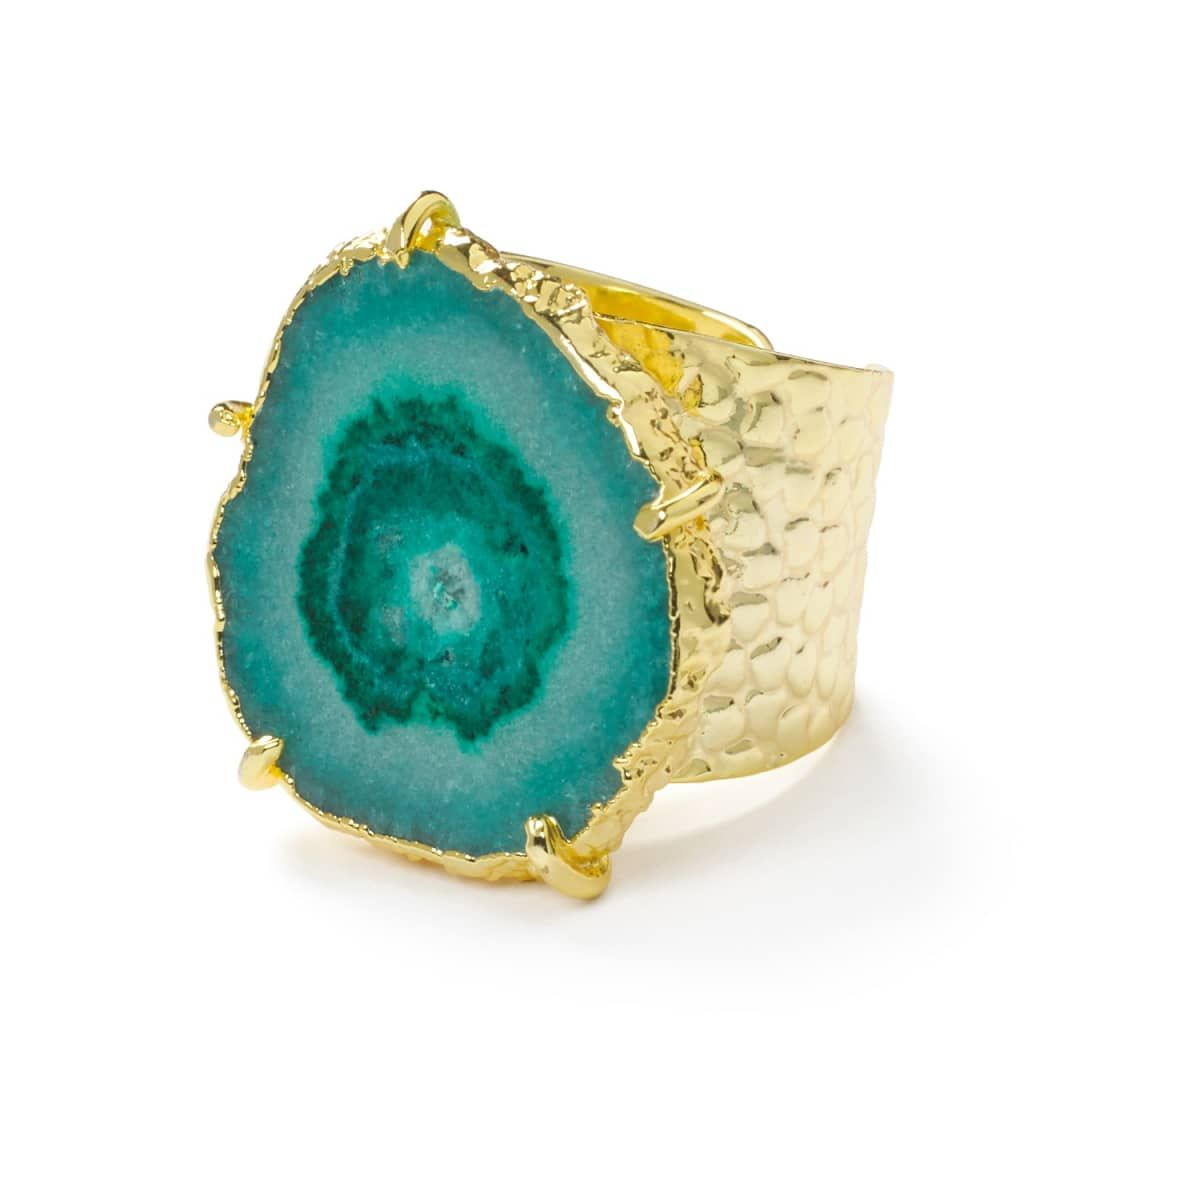 Gemstone 'Solar Power' Adjustable Statement Ring